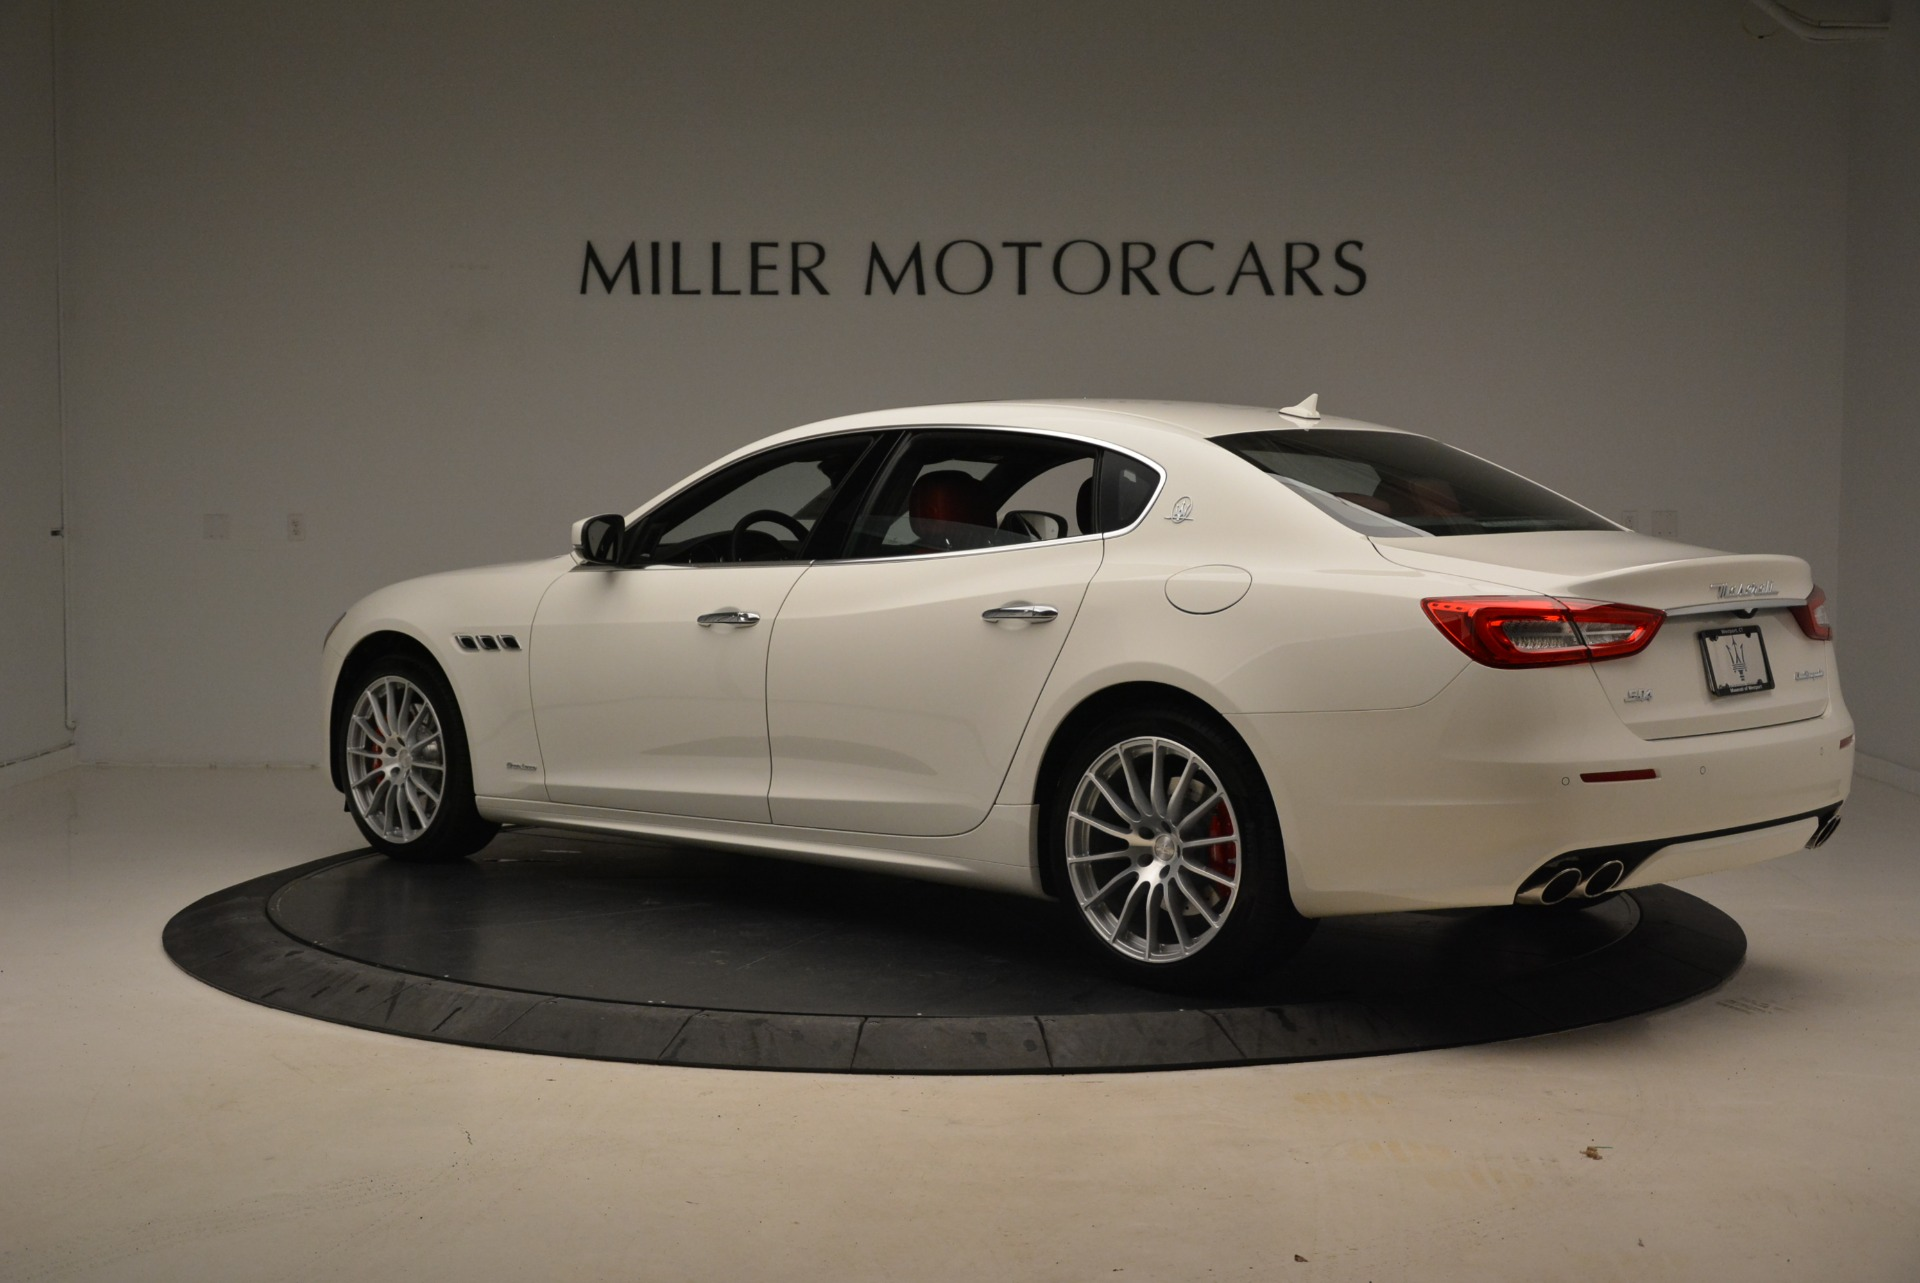 New 2018 Maserati Quattroporte S Q4 GranLusso For Sale In Westport, CT 2085_p6